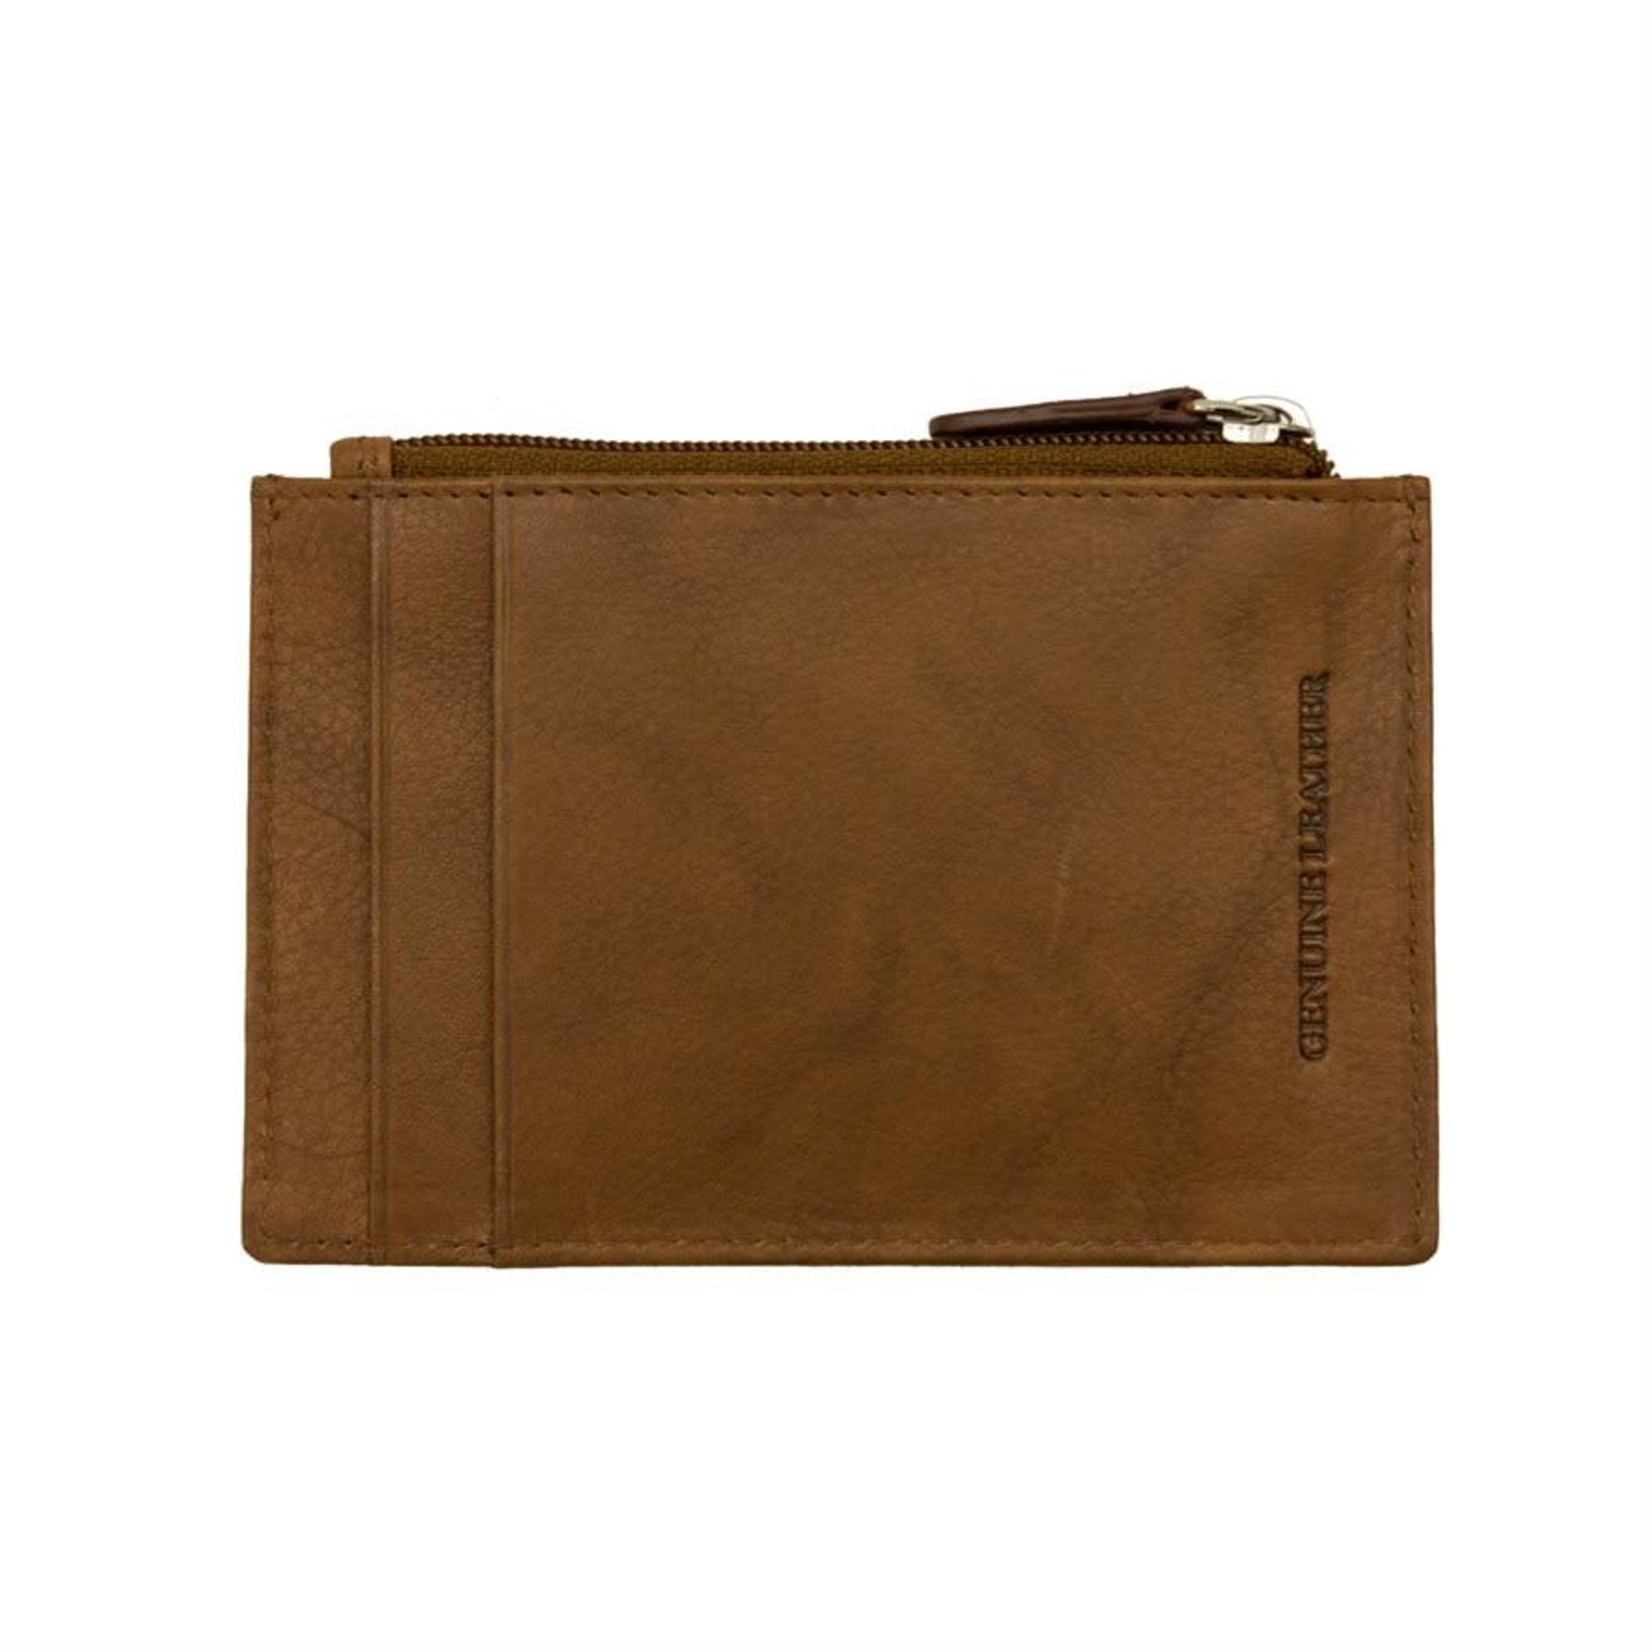 Leather Handbags and Accessories 7416 Antique Saddle - RFID Card Holder